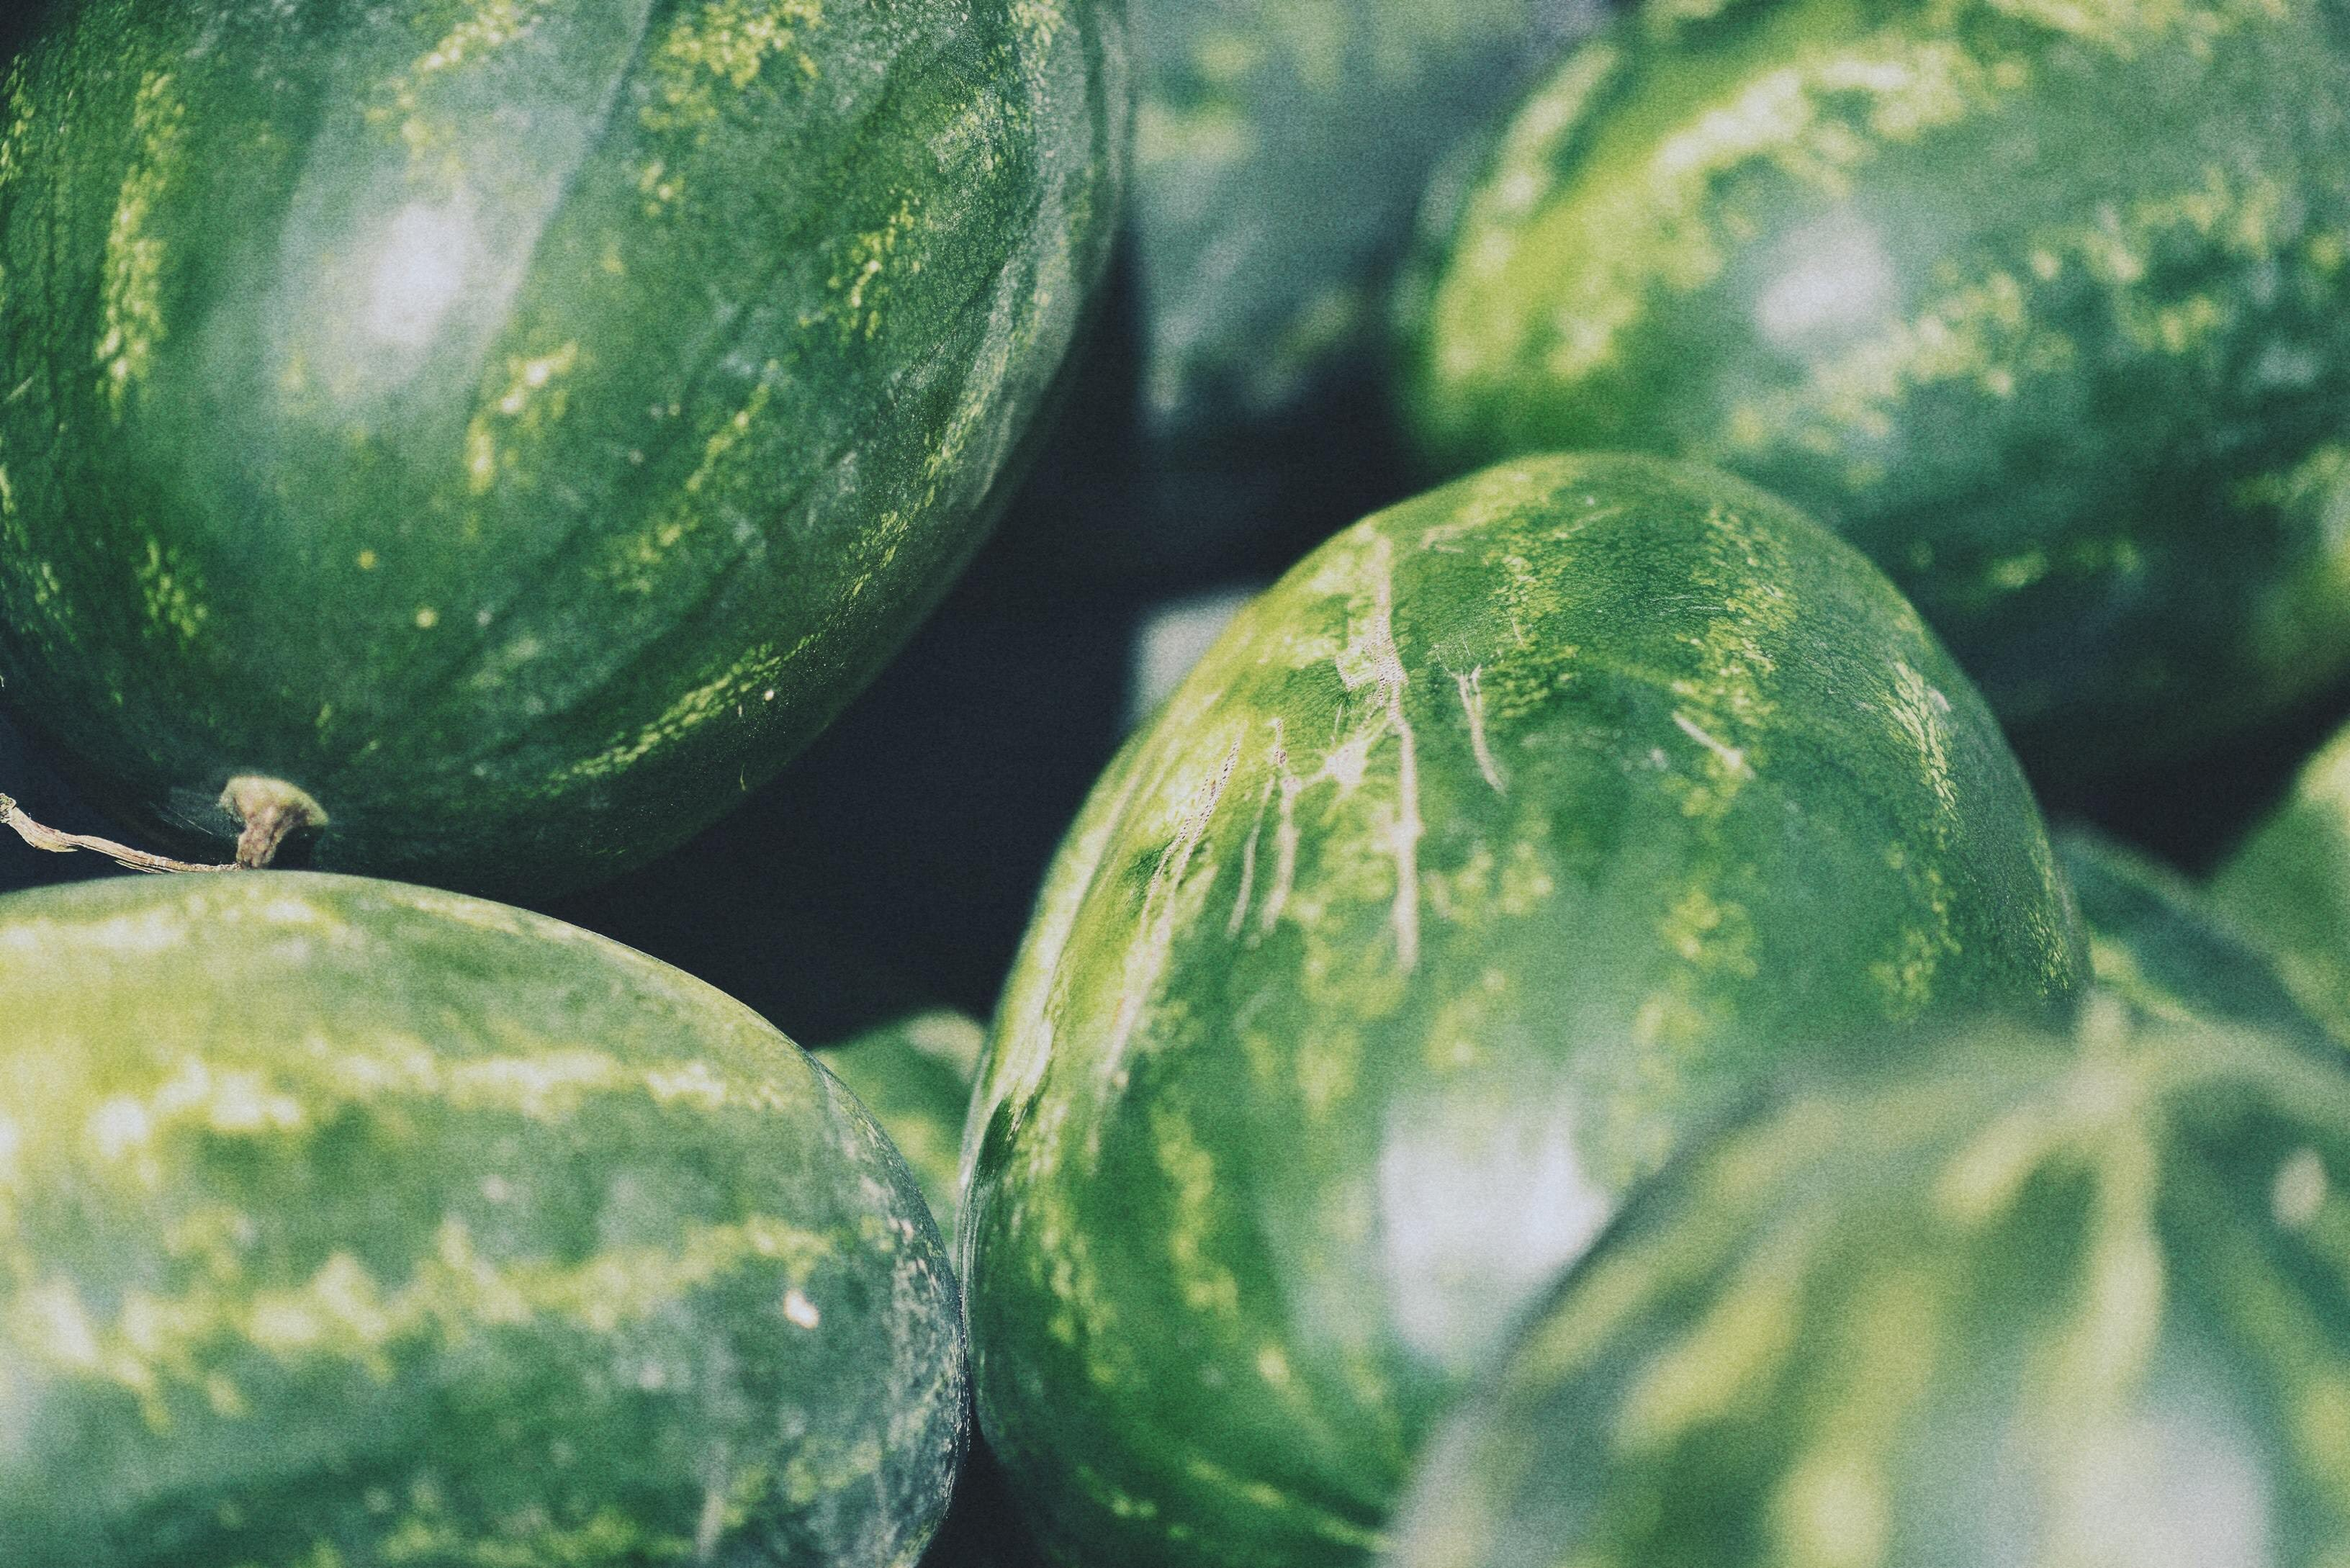 selective focus photo of watermelons